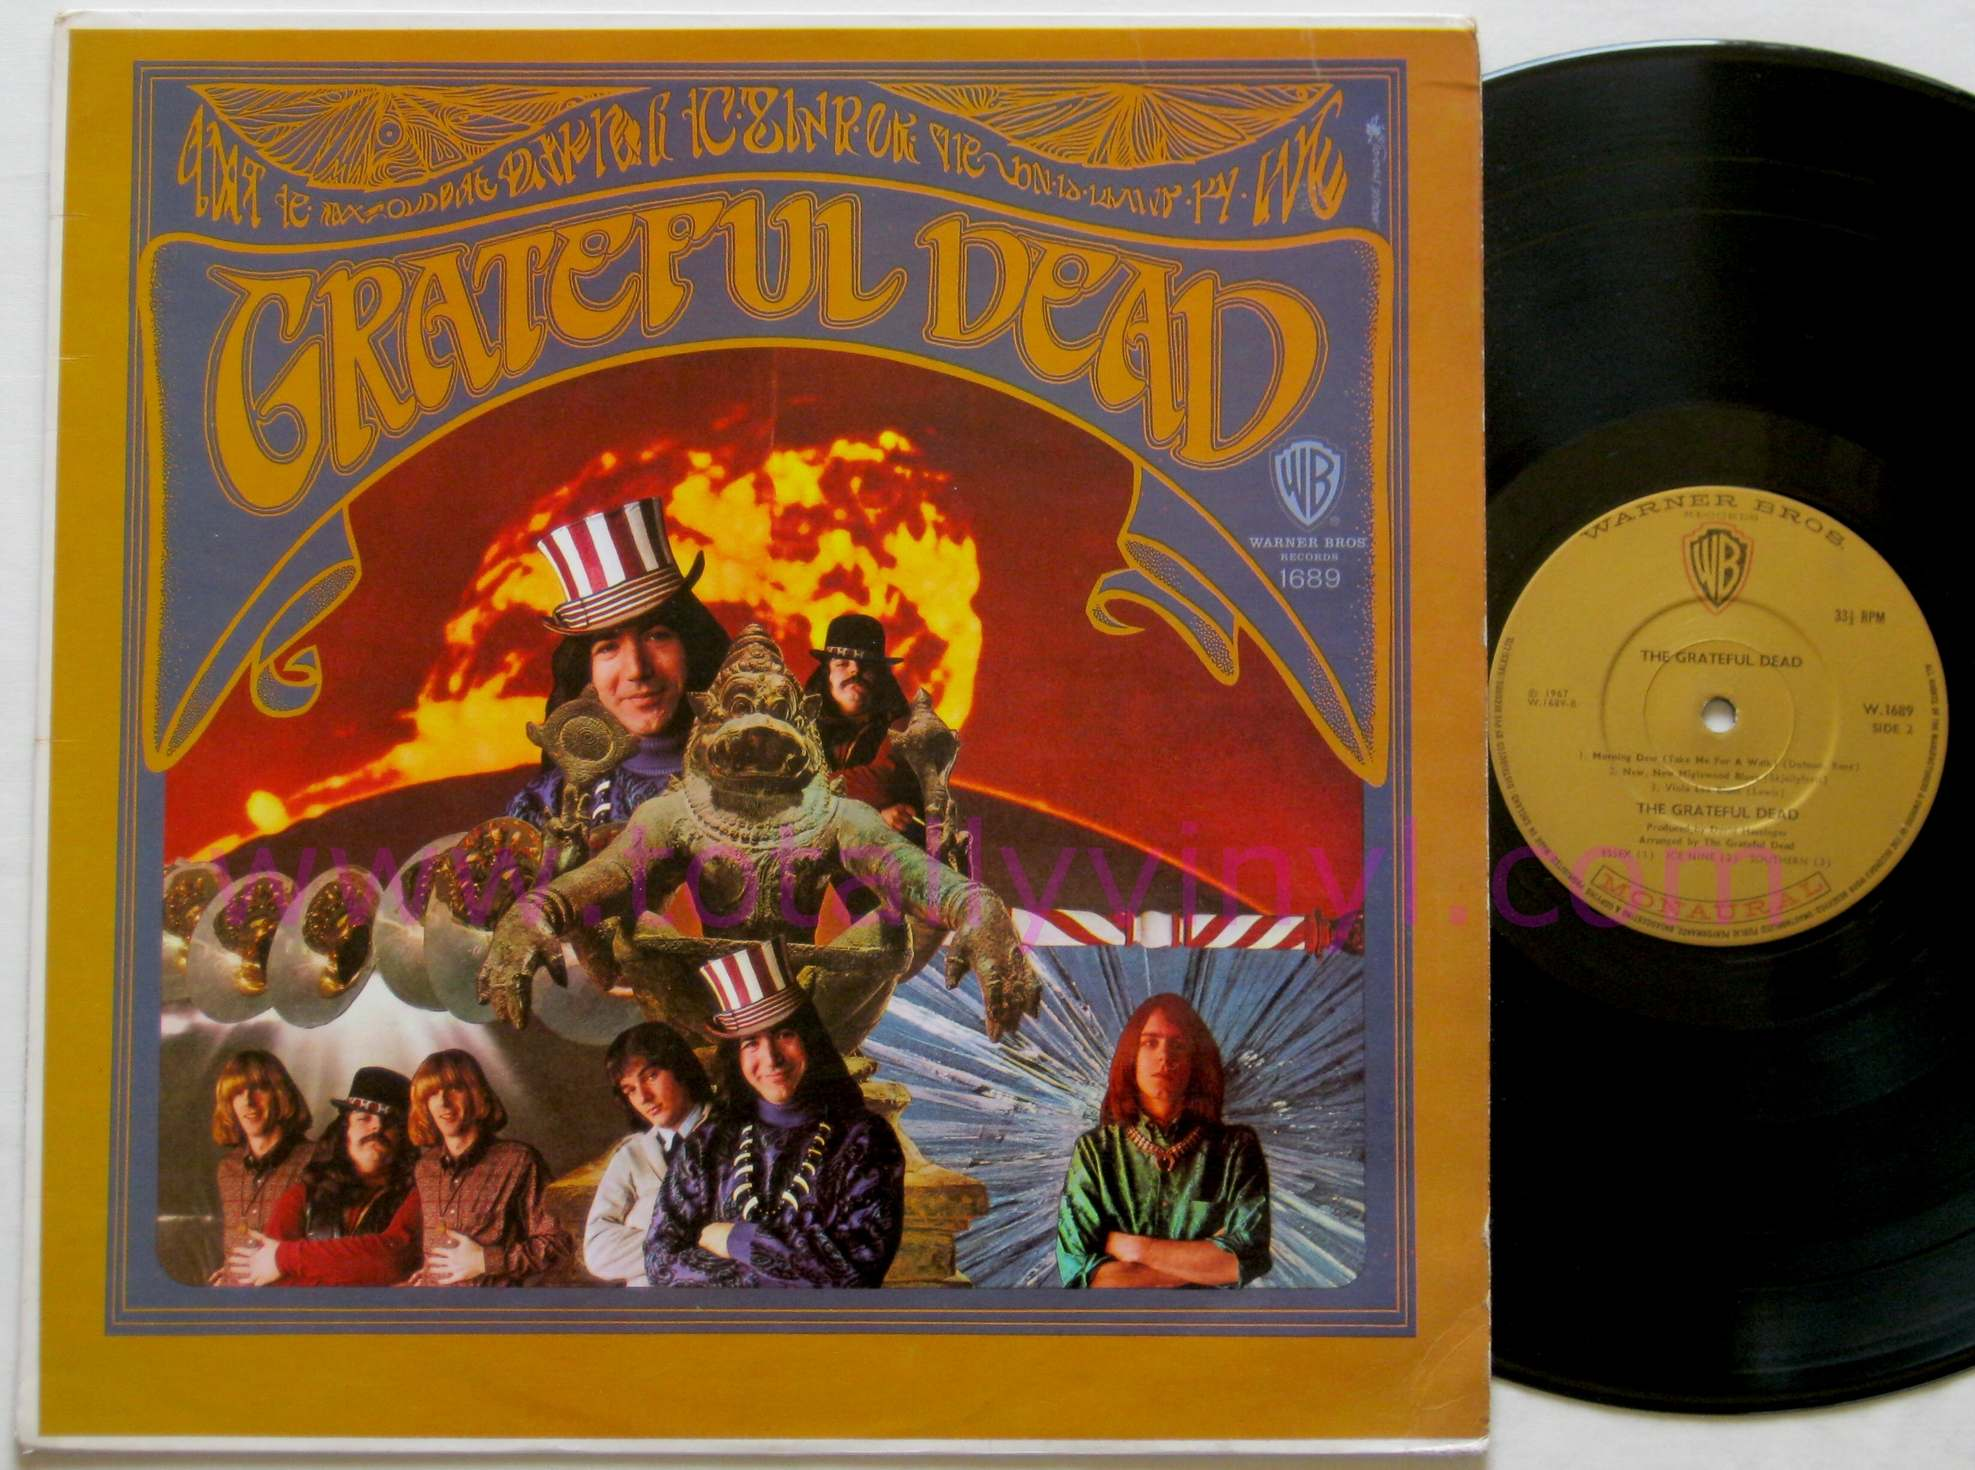 Photos of the grateful dead